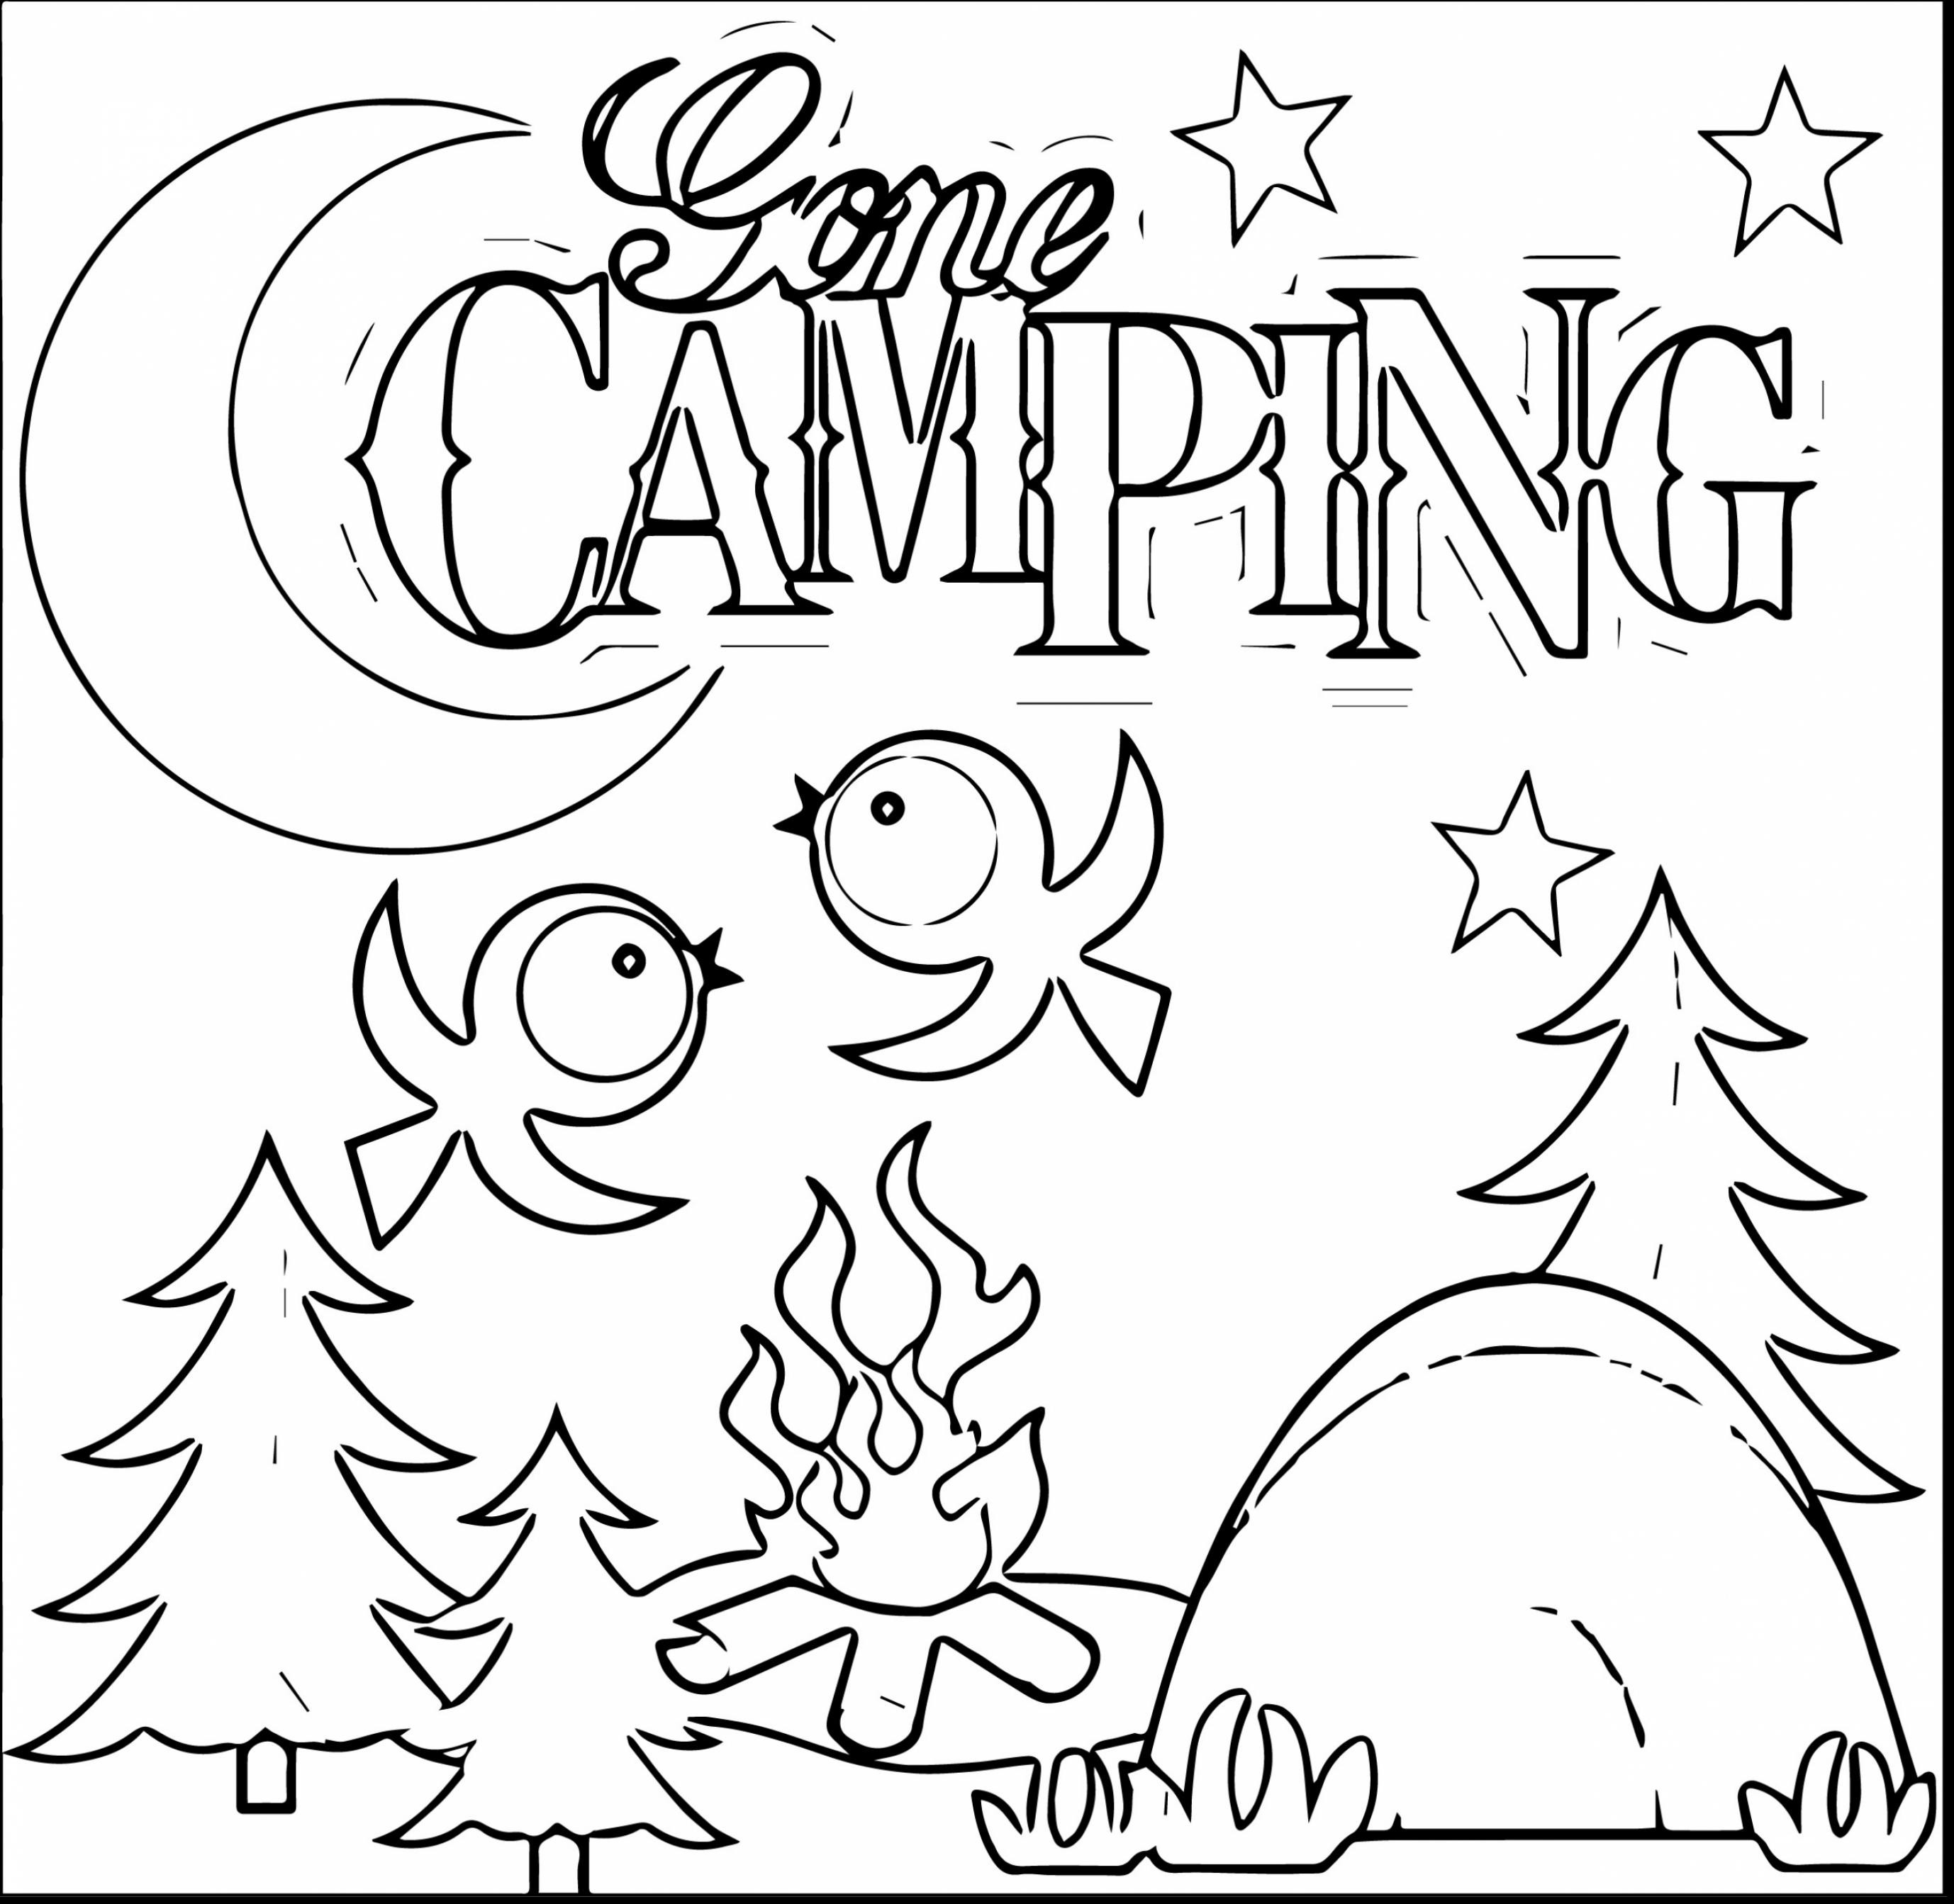 Camper Coloring Pages